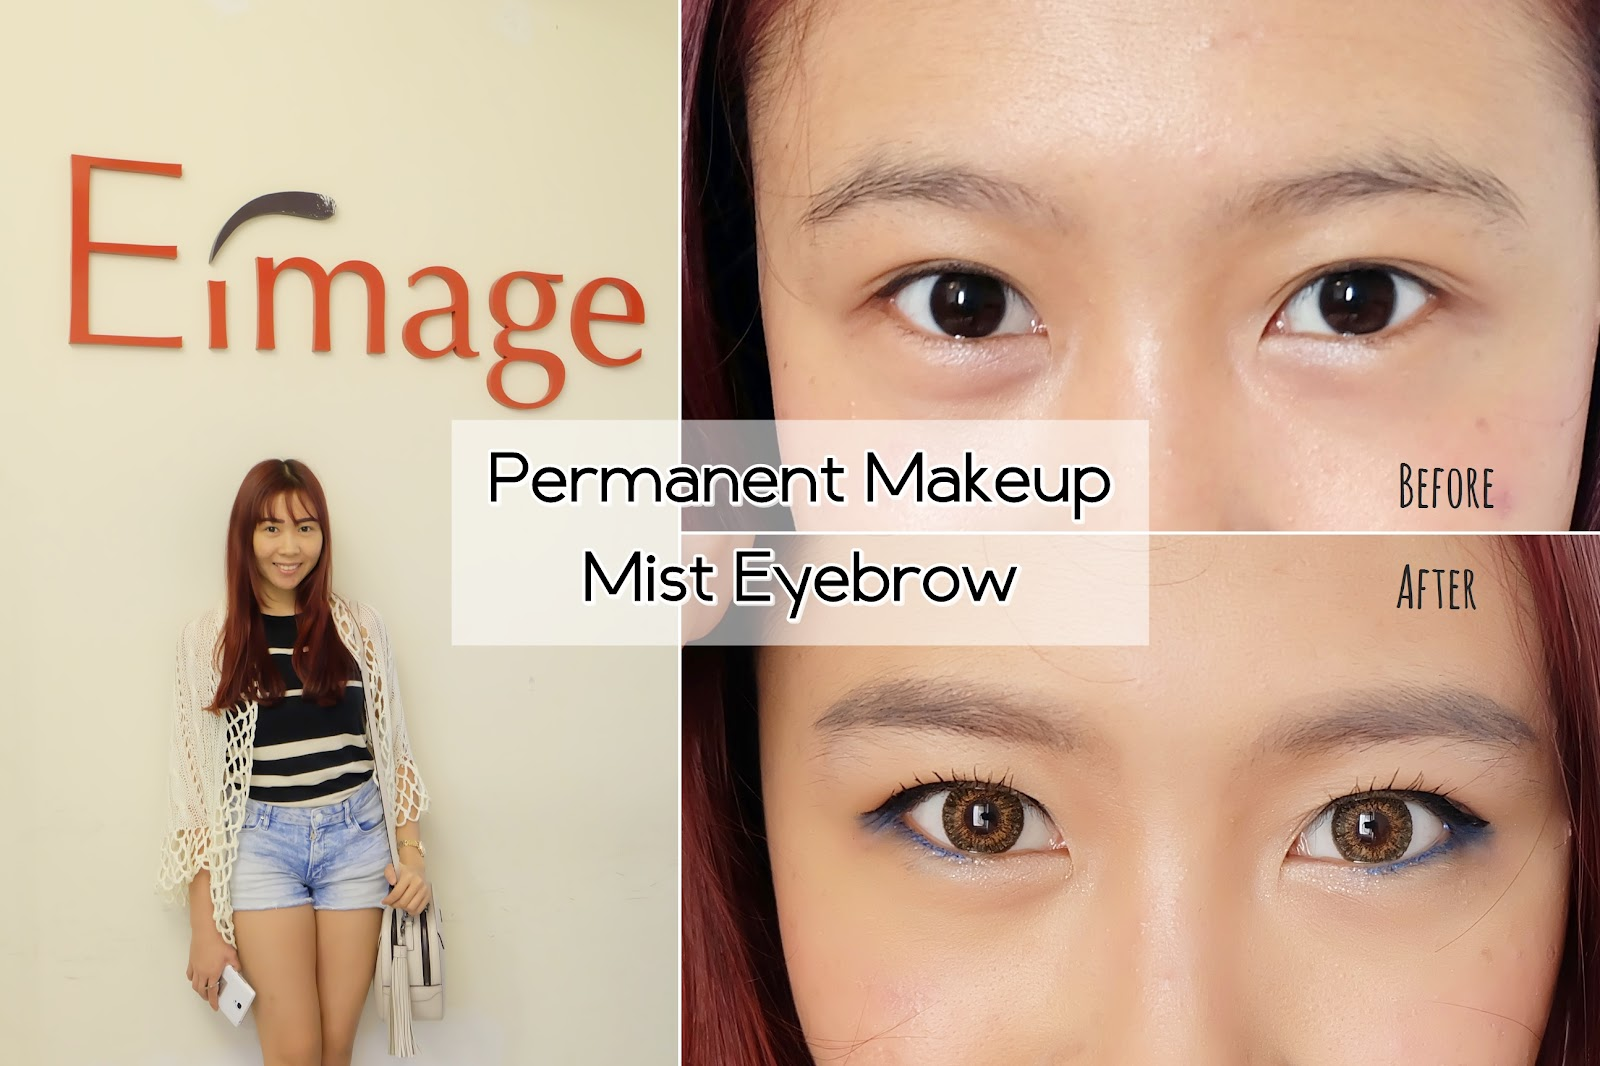 Permanent Makeup - Mist Eyebrow by E-image Aesthetic